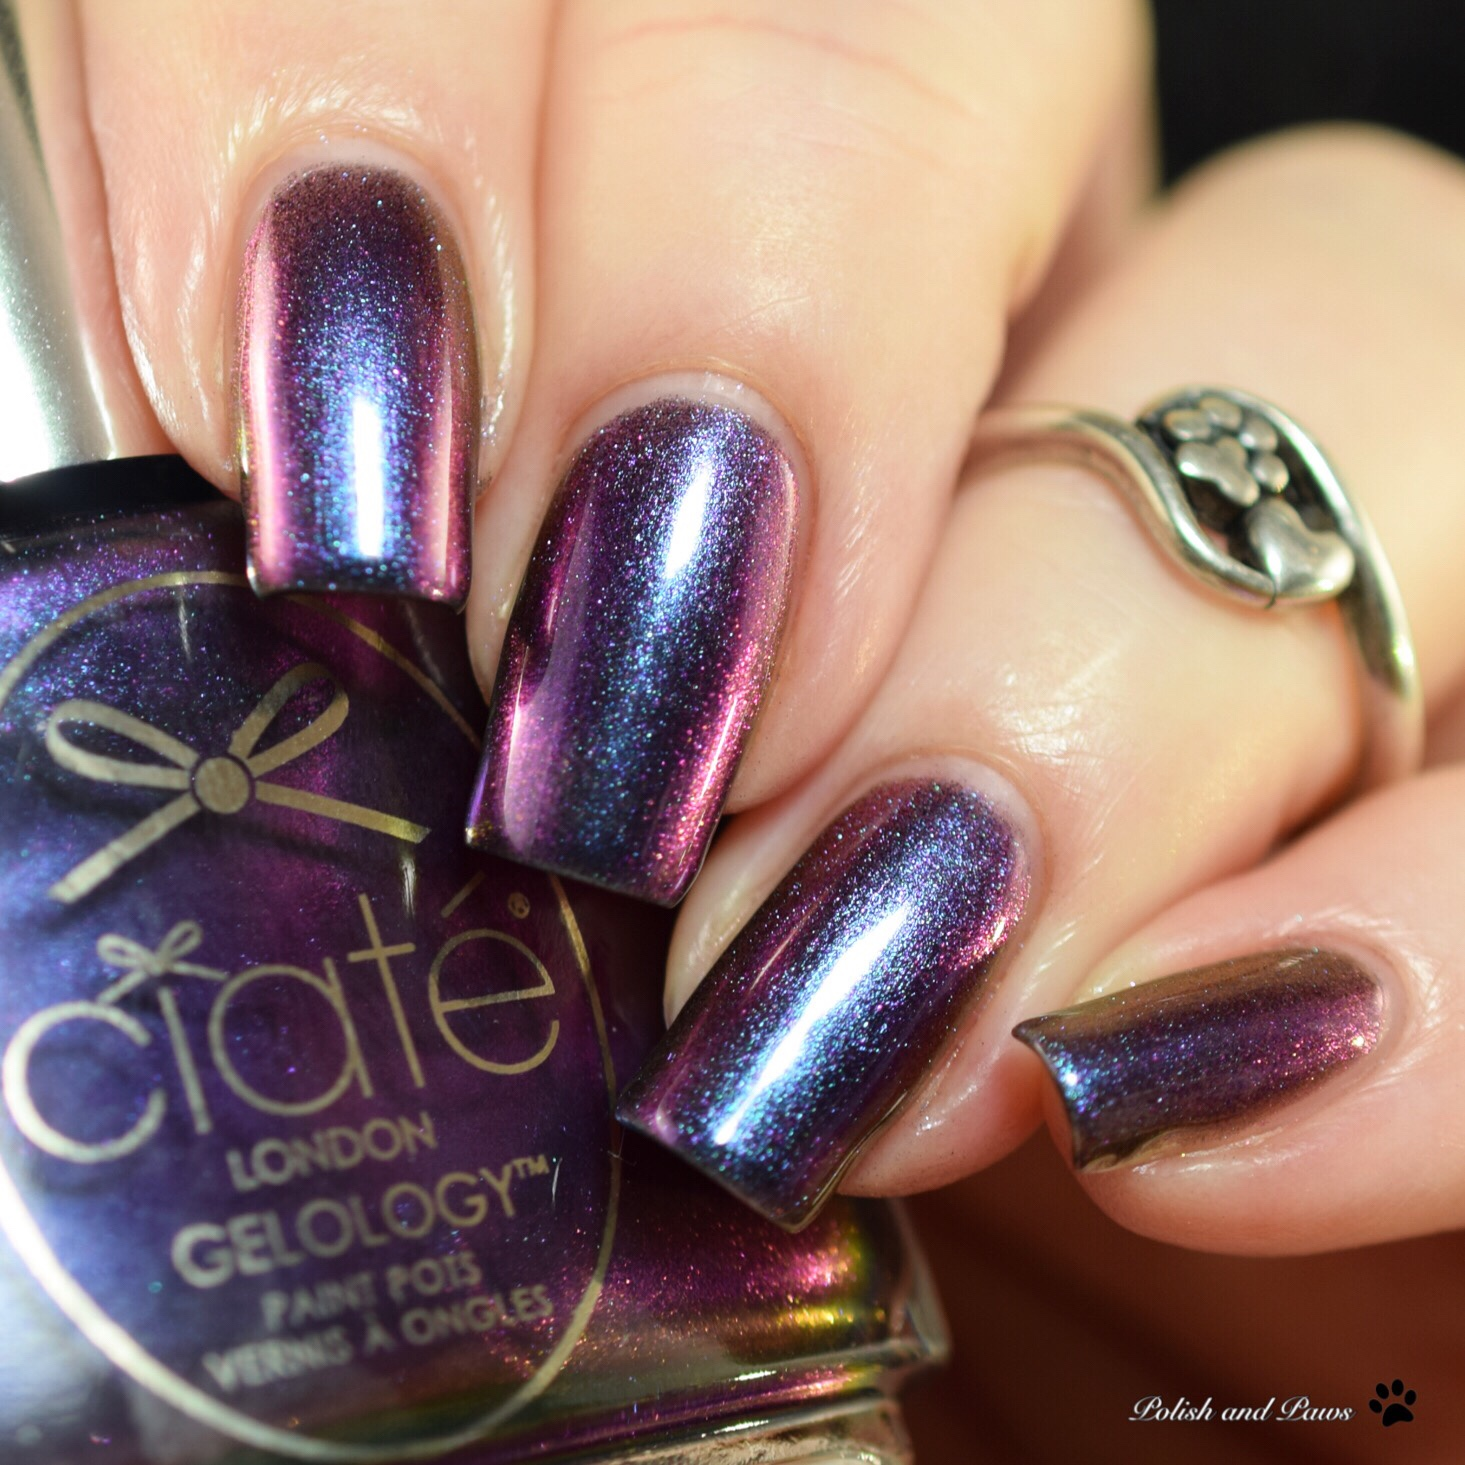 Ciate London After Dark